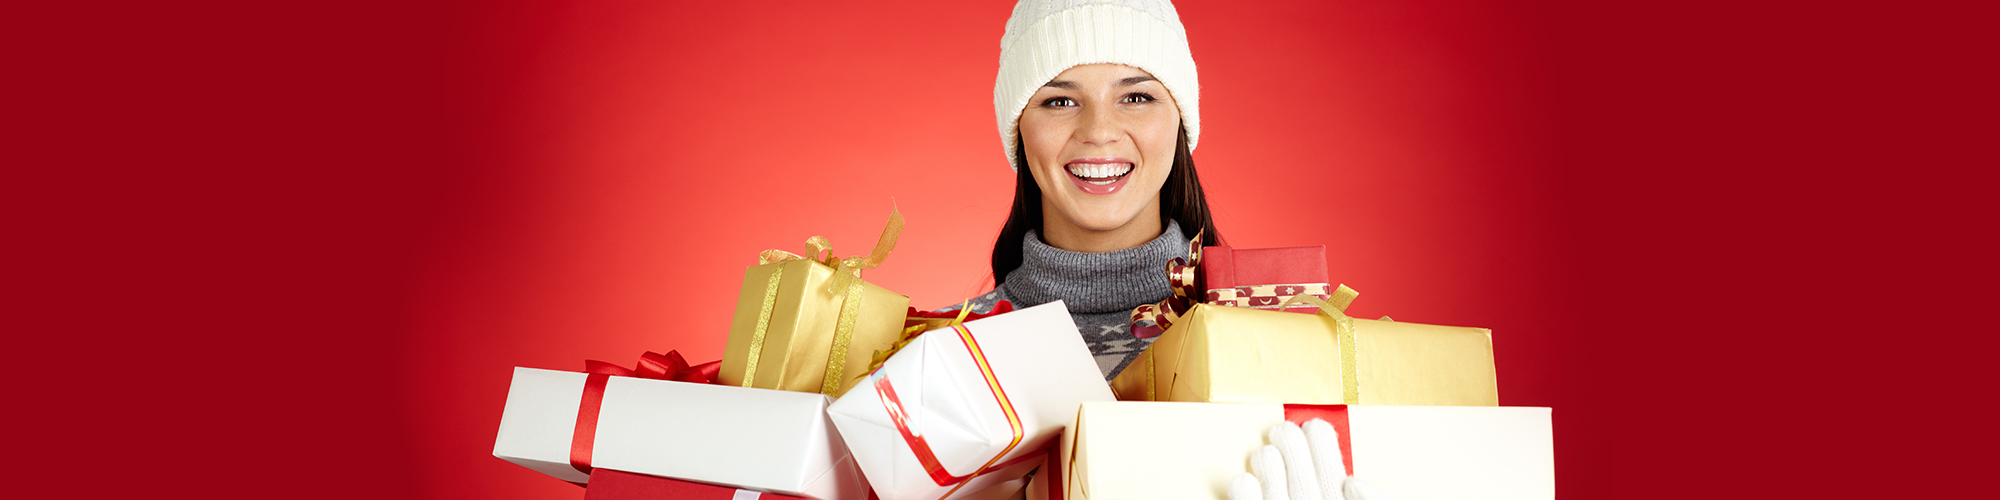 Woman carrying gifts